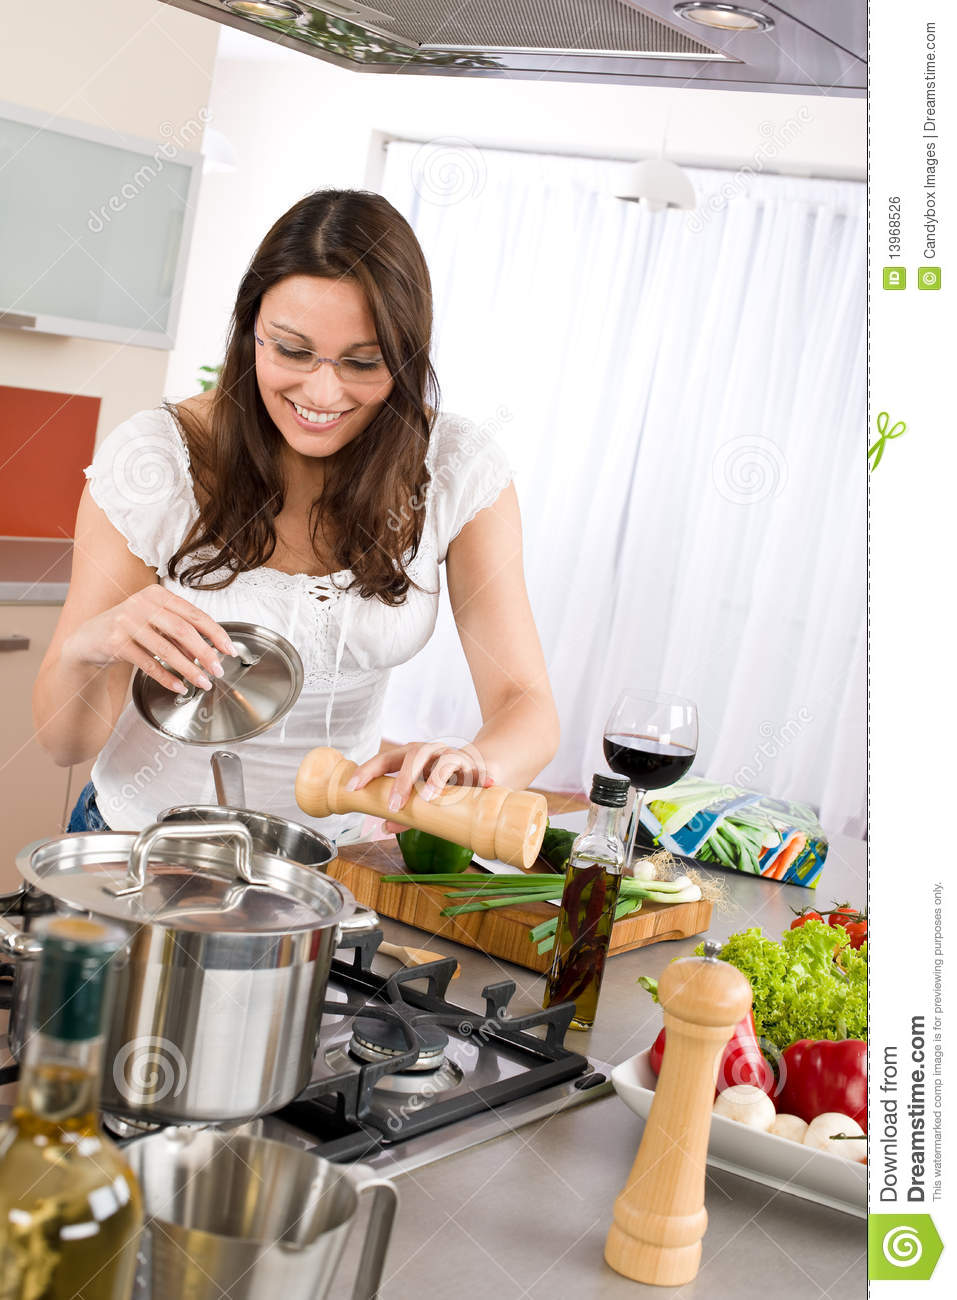 cooking-happy-woman-cook-modern-kitchen-